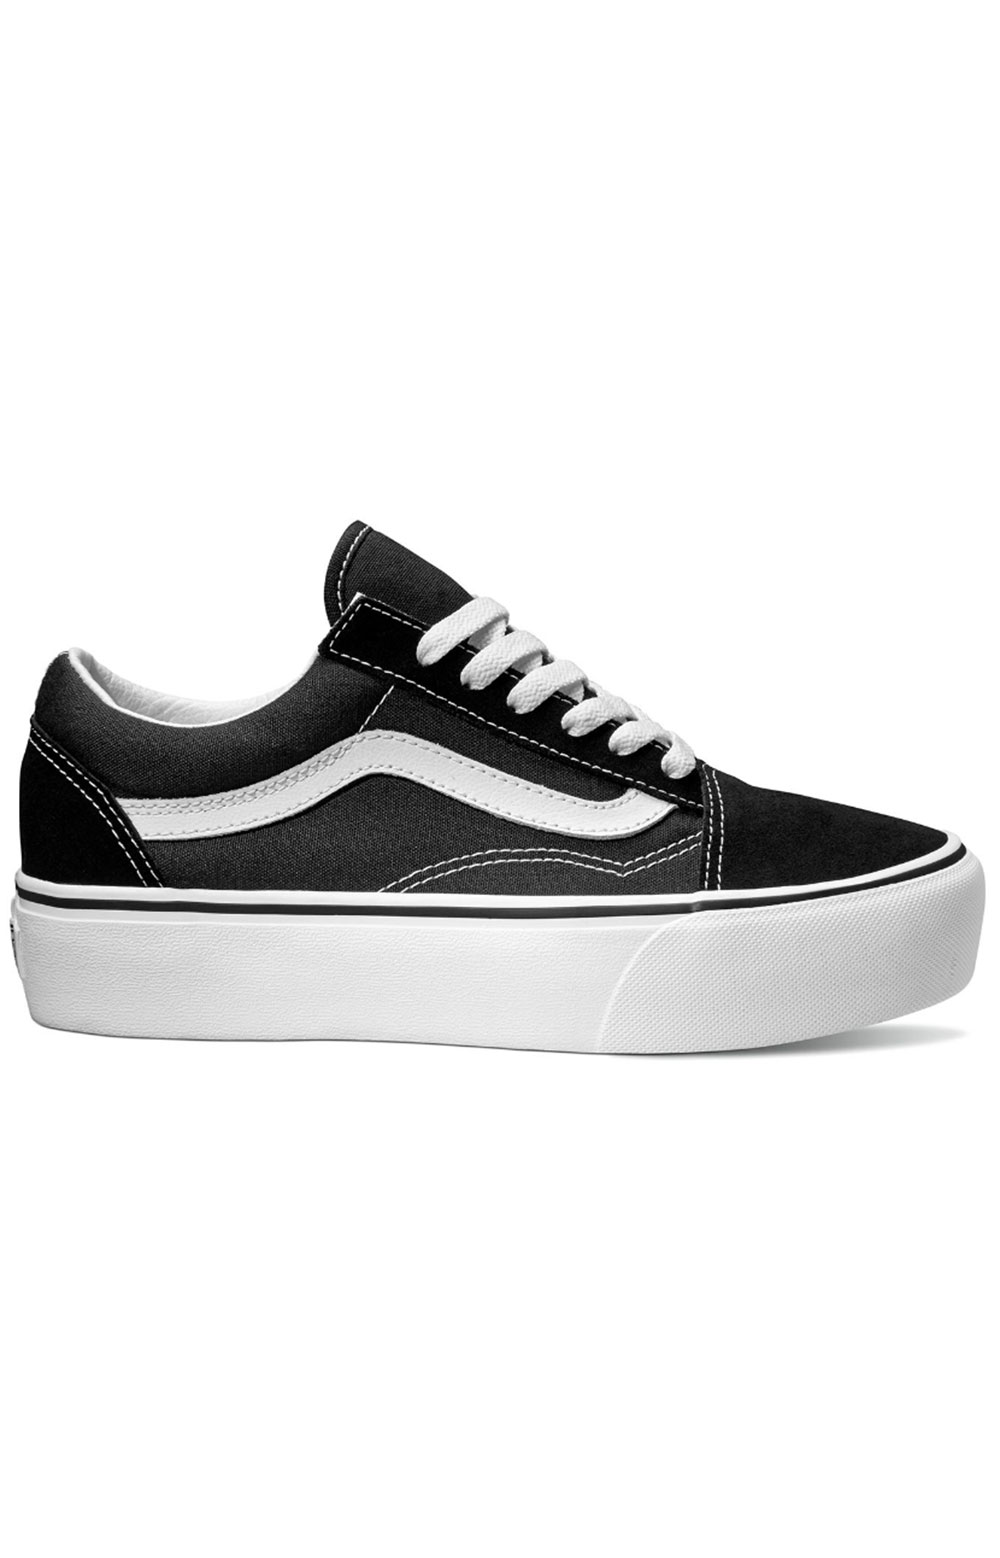 (B3UY28) Old Skool Platform Shoe - Black/White